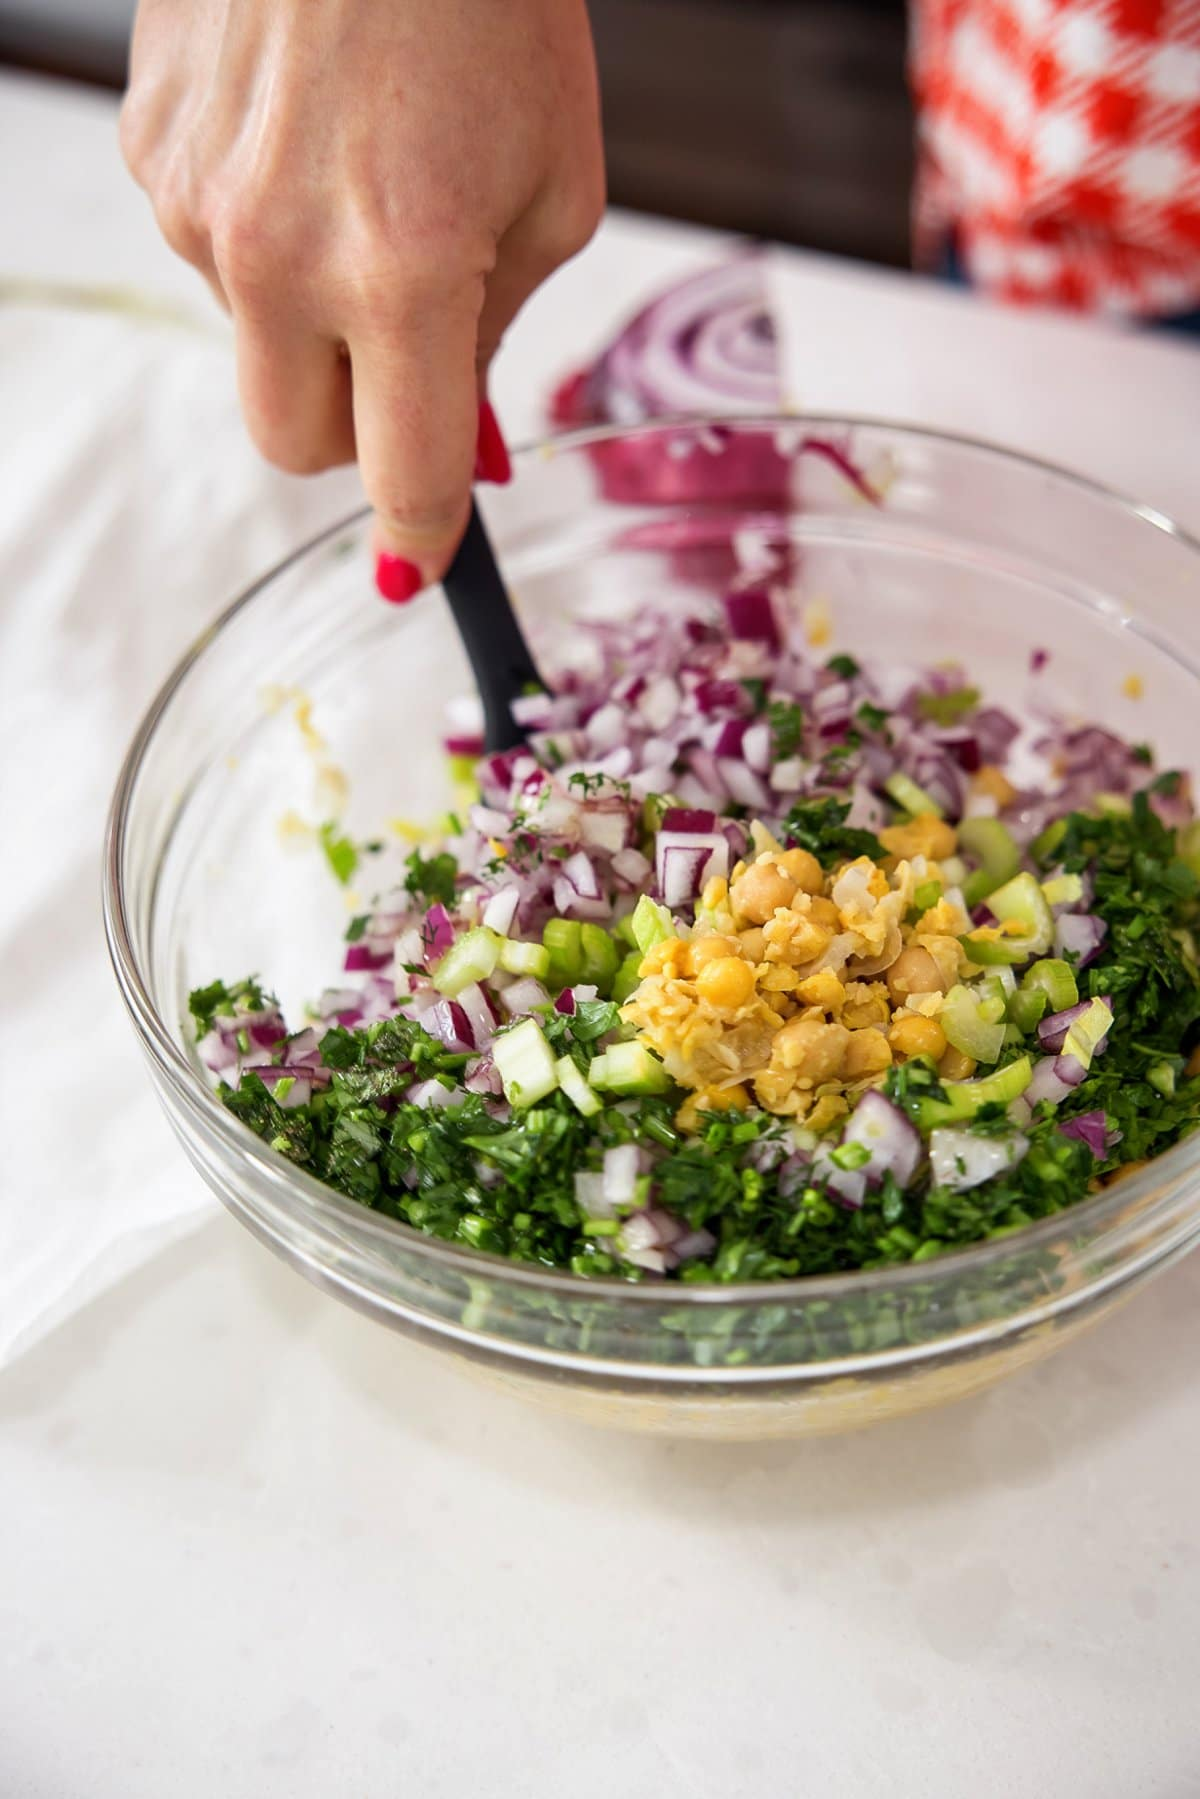 Liz tossing smashed chickpea salad with dill.